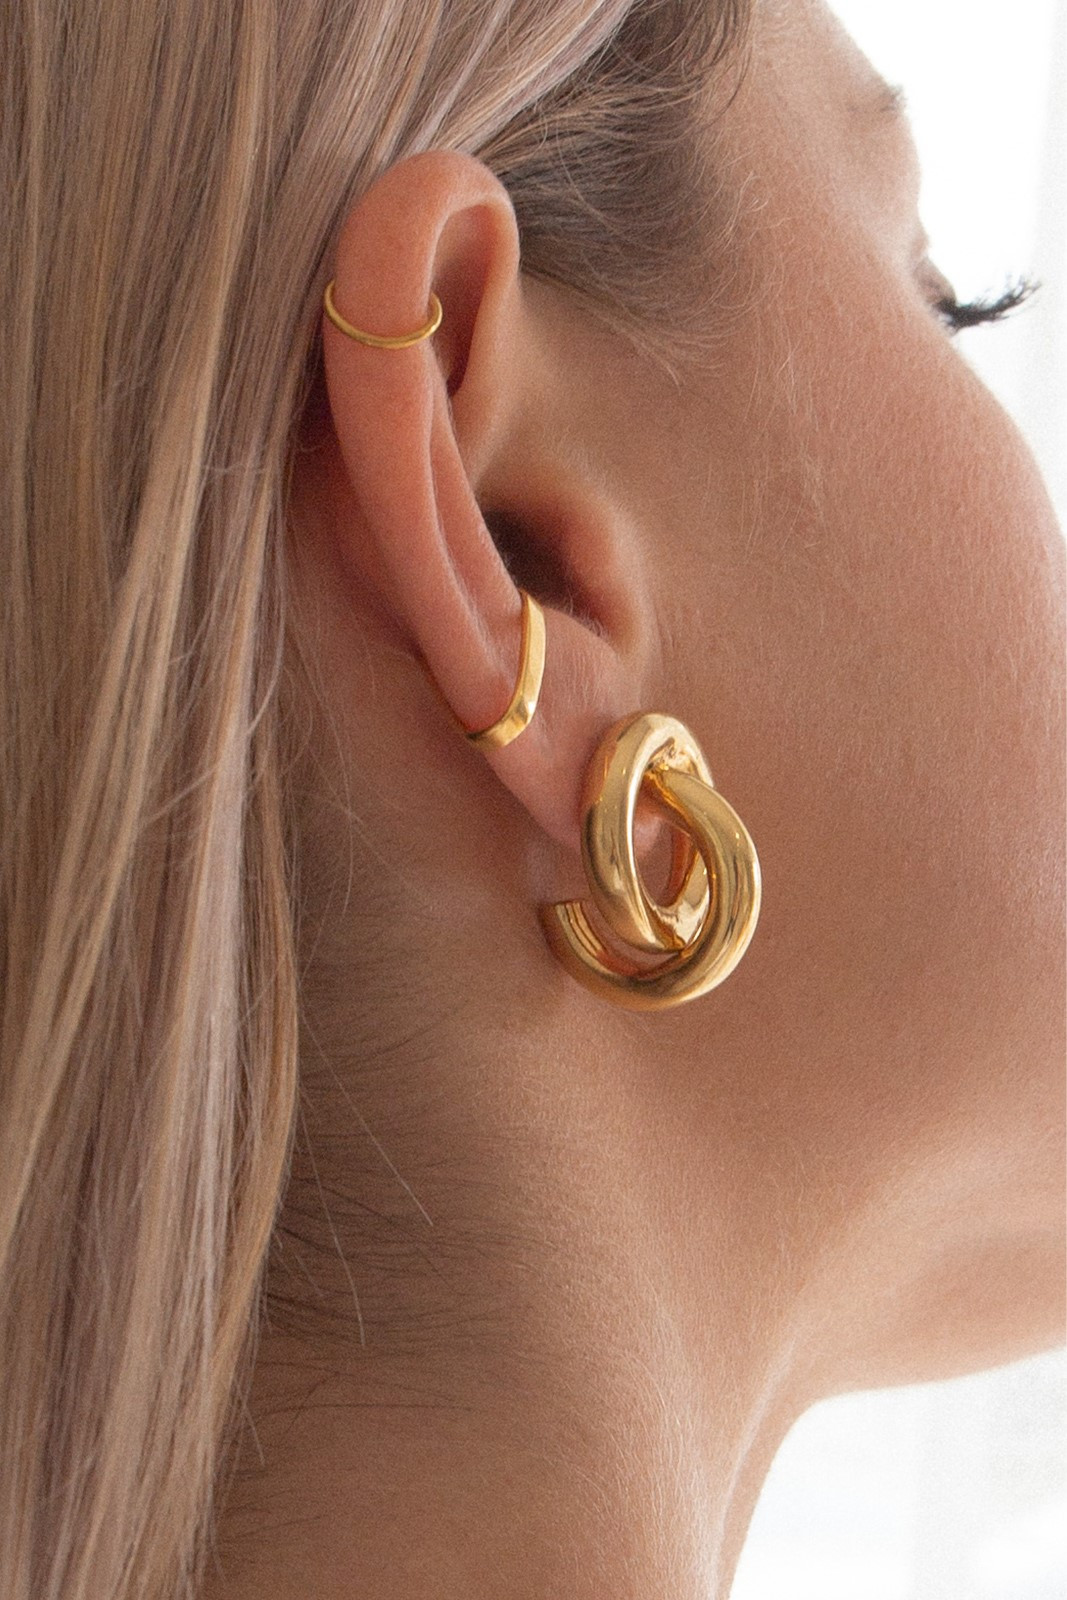 Elka Collective FLASH KNOT HOOPS Gold  2